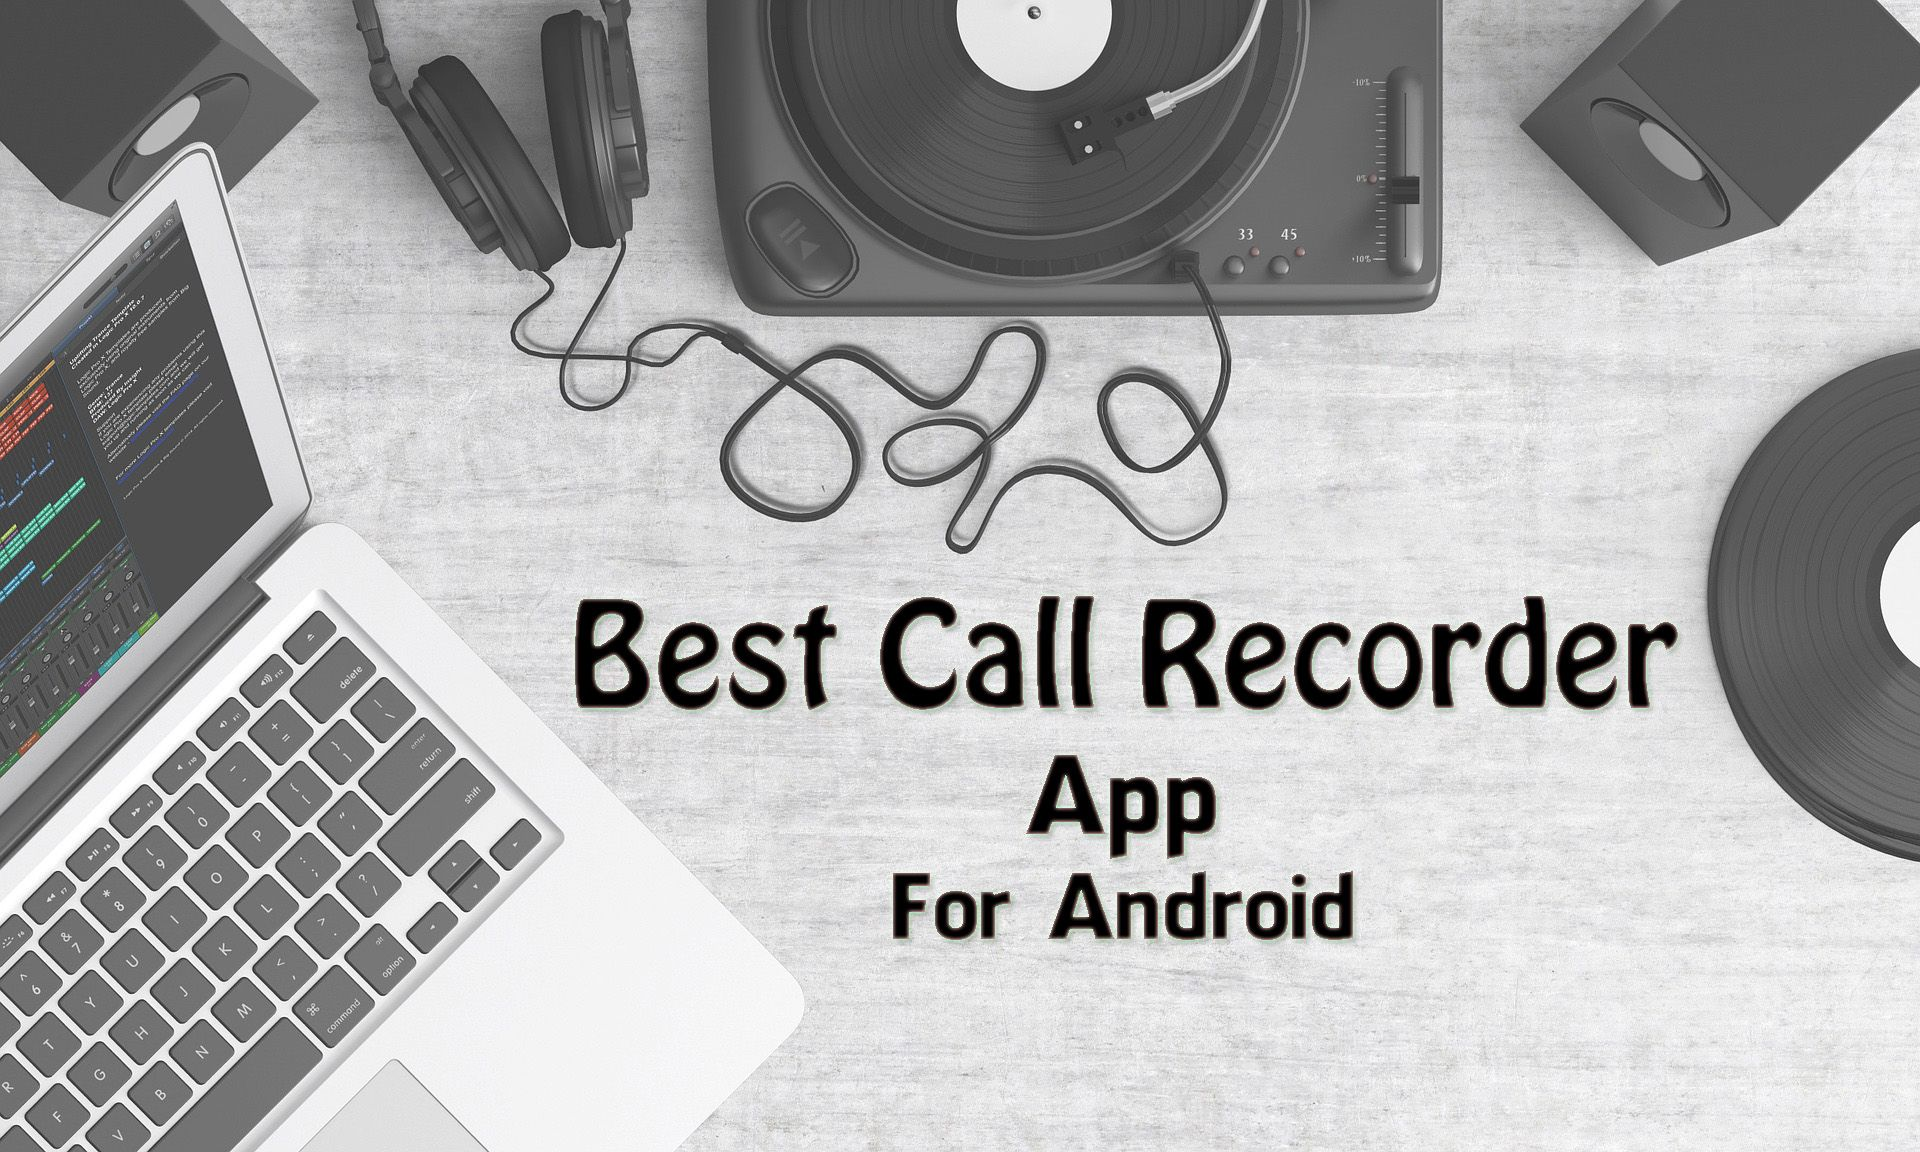 5 Best Call Recorder App For Android To Record Voice Call